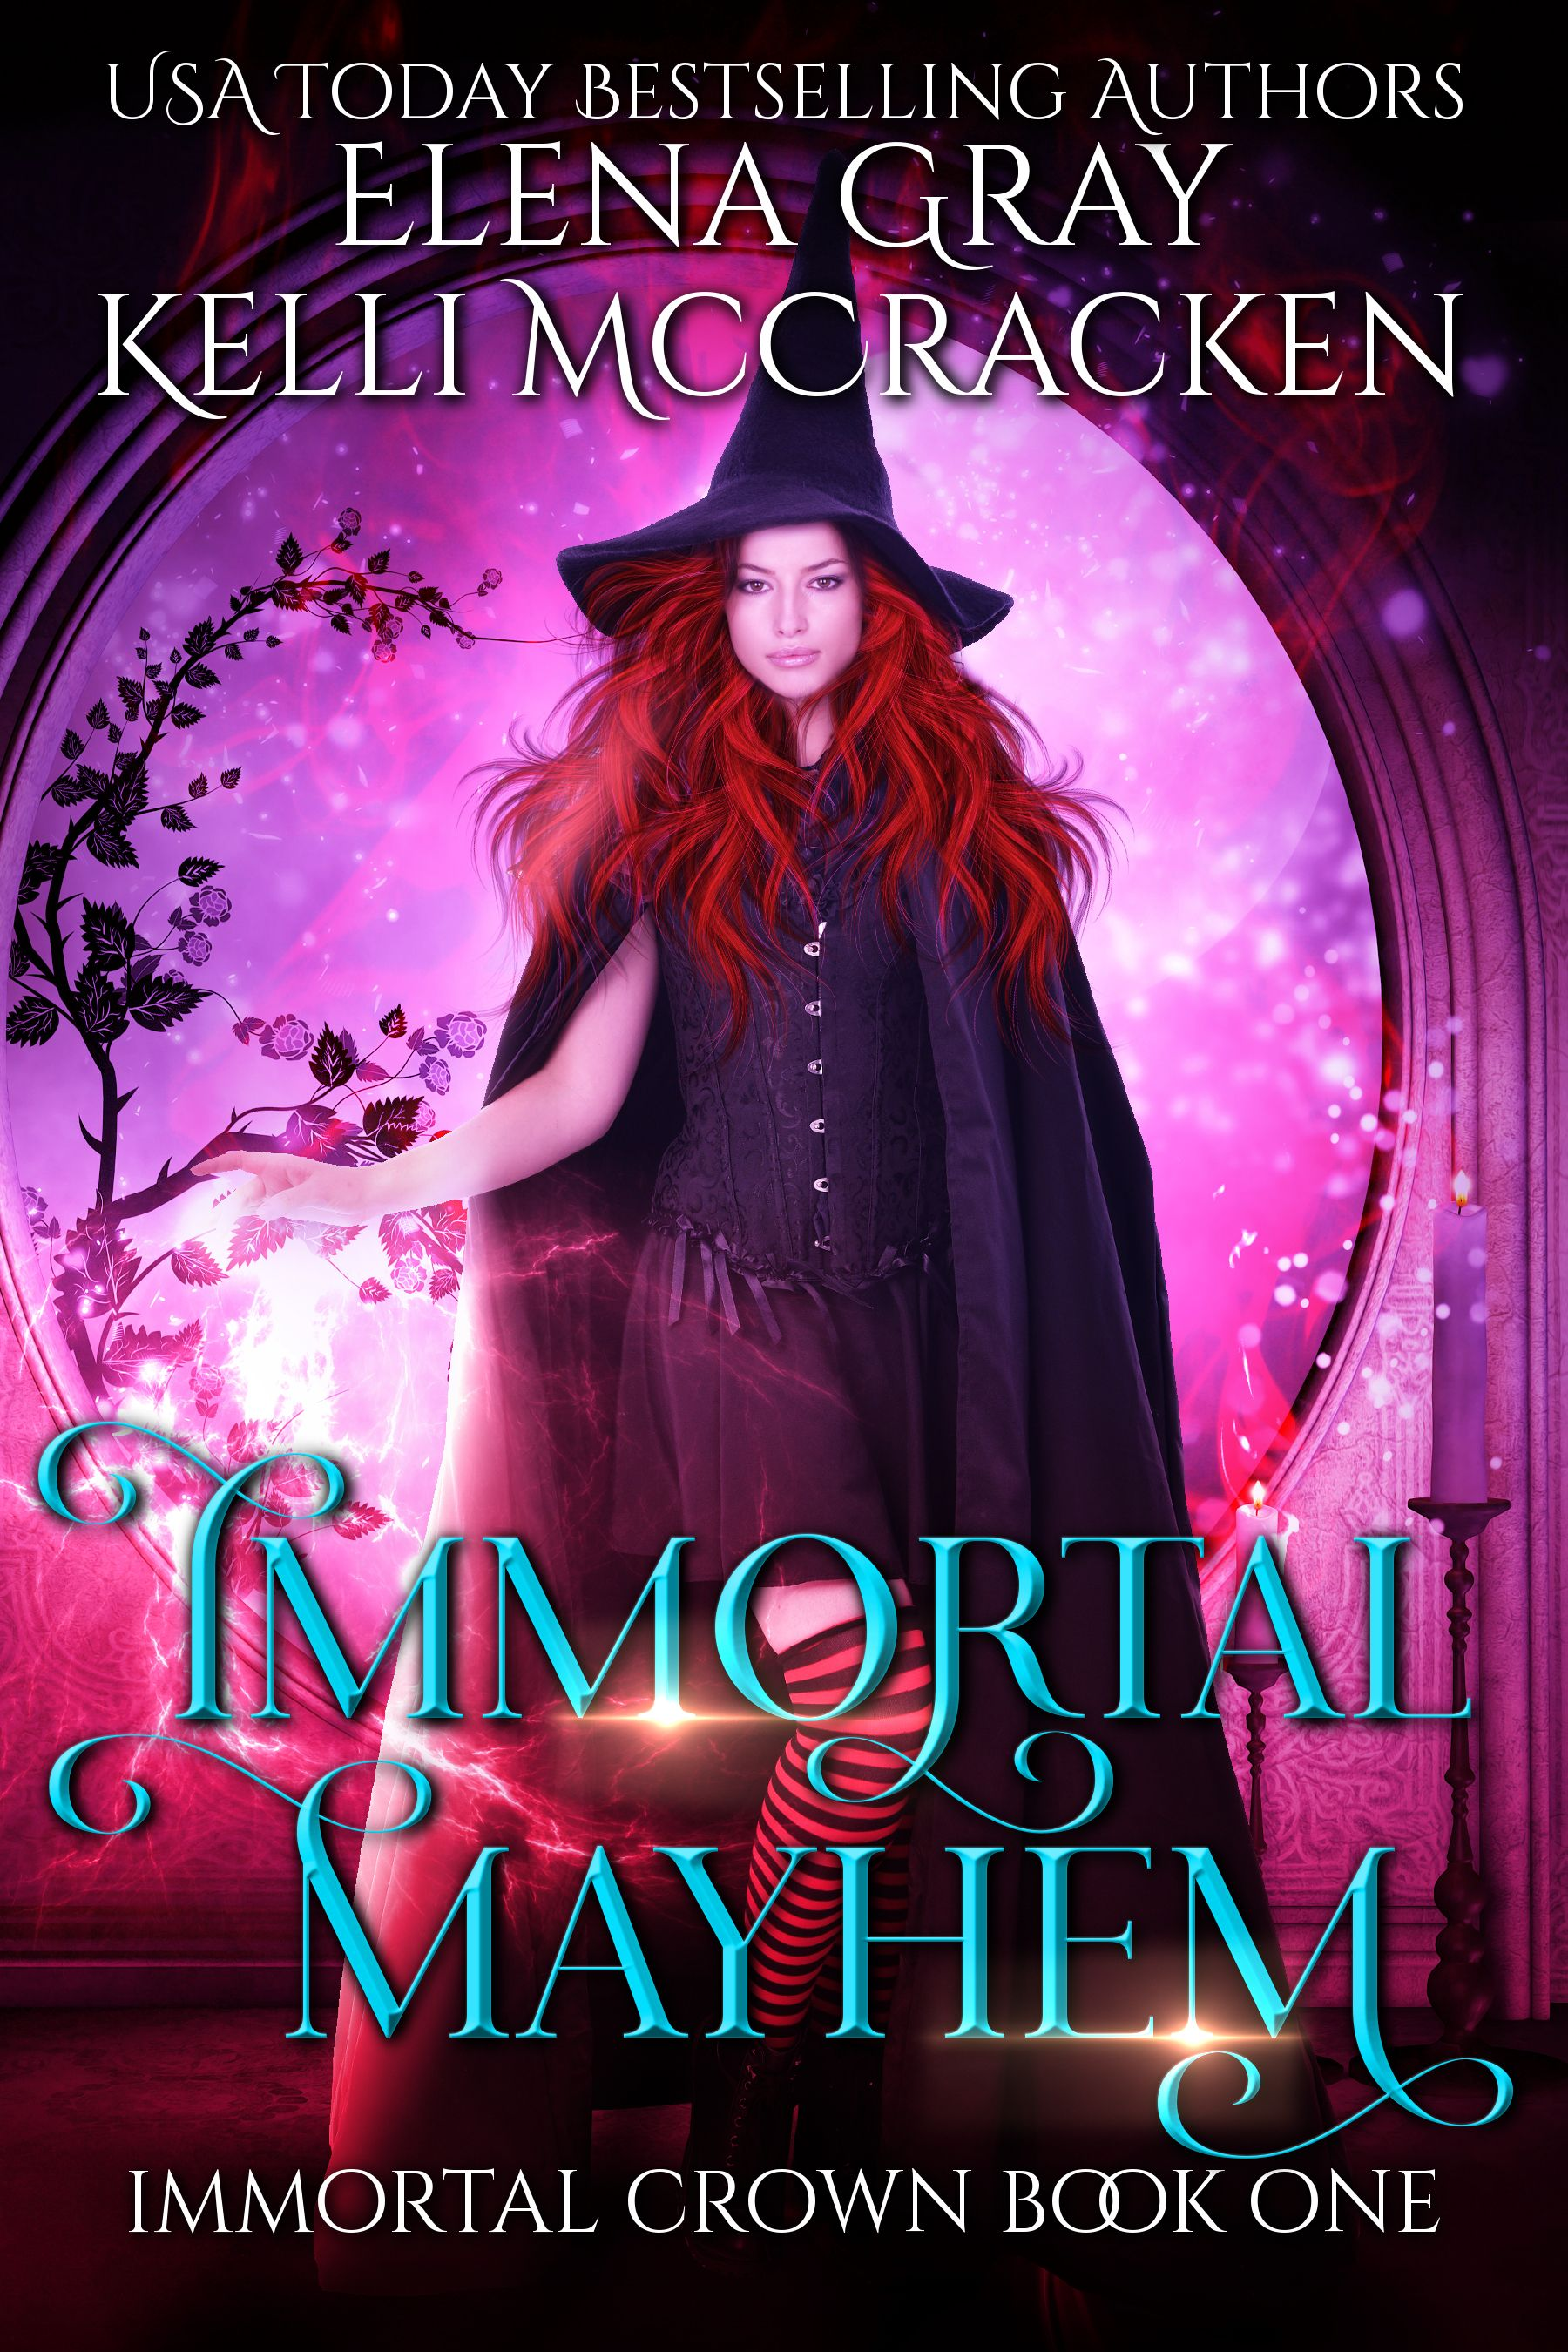 Check out this paranormal romance free with kindle